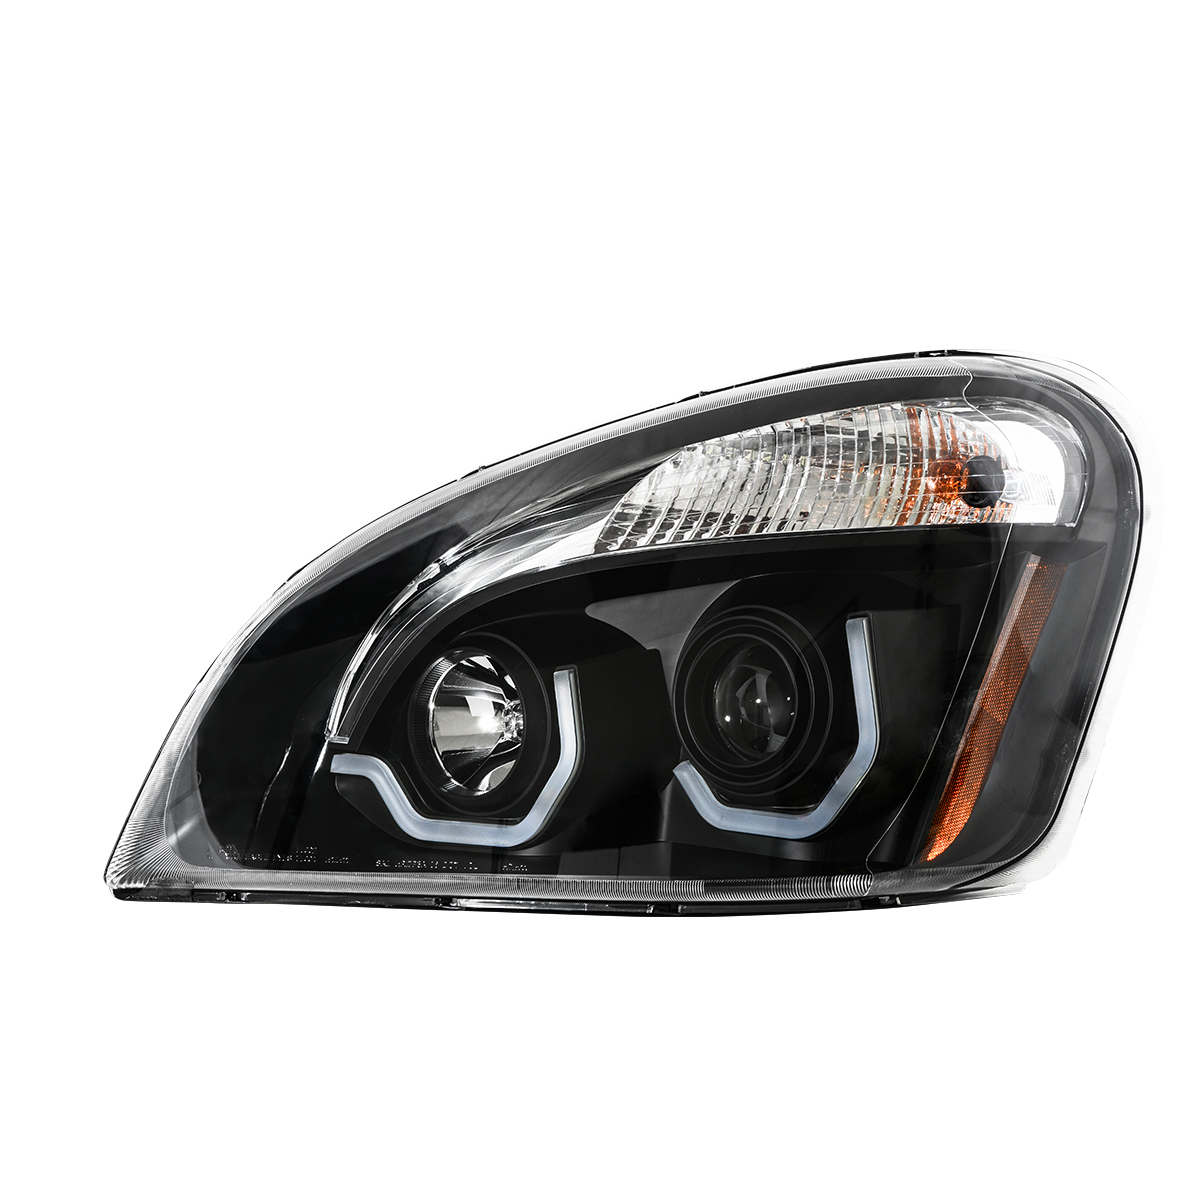 Freightliner Cascadia Matte Black Projector Headlight w/ White LED Running Light